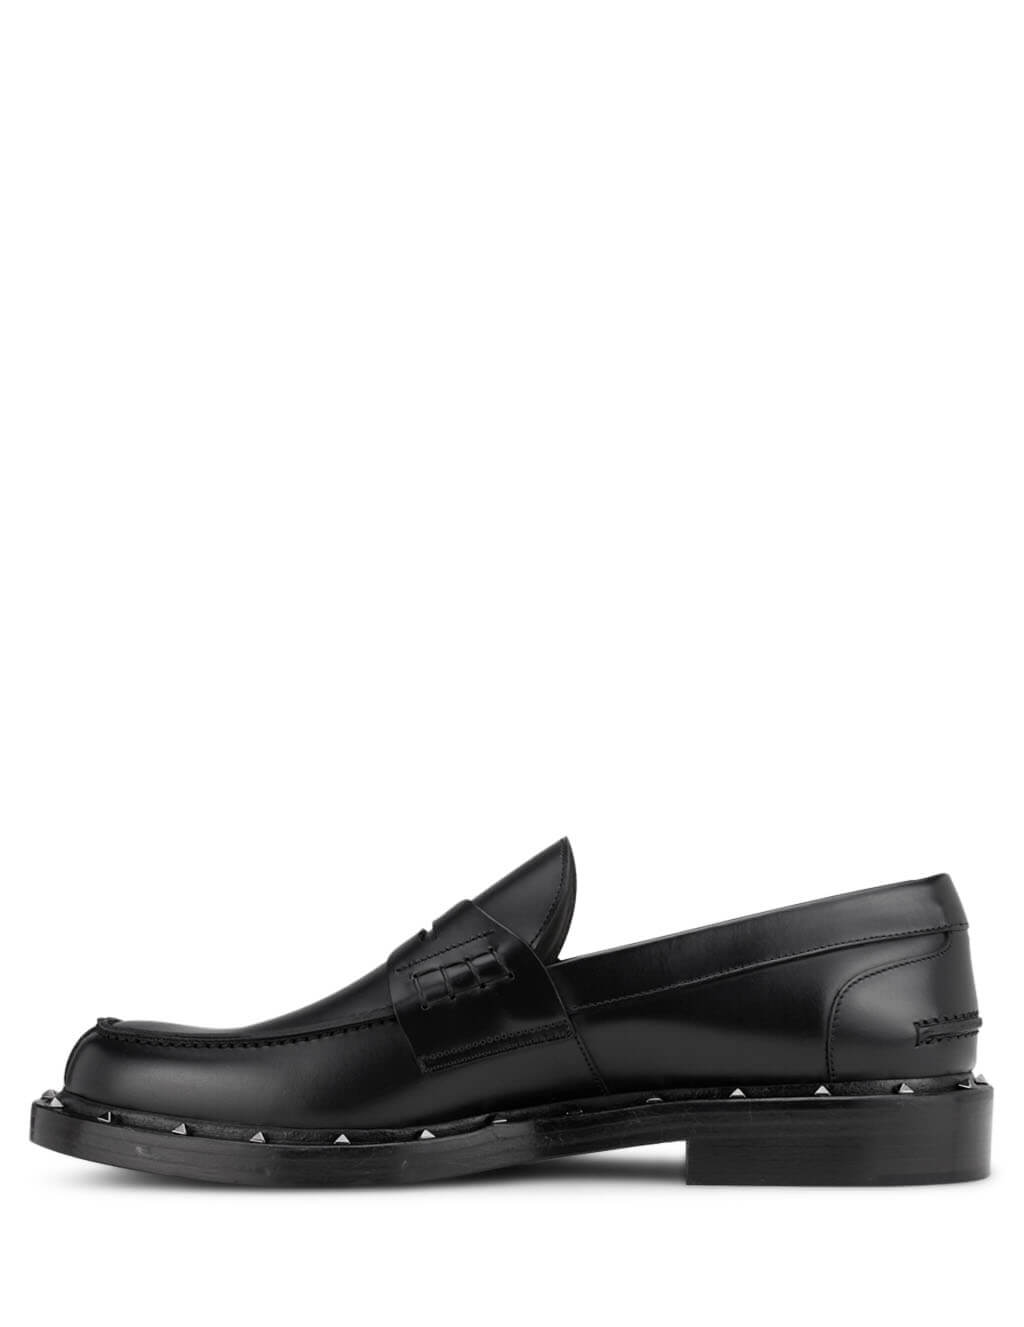 Valentino Men's Black Leather Rockstud Loafers TY2S0C42PMF 0NO